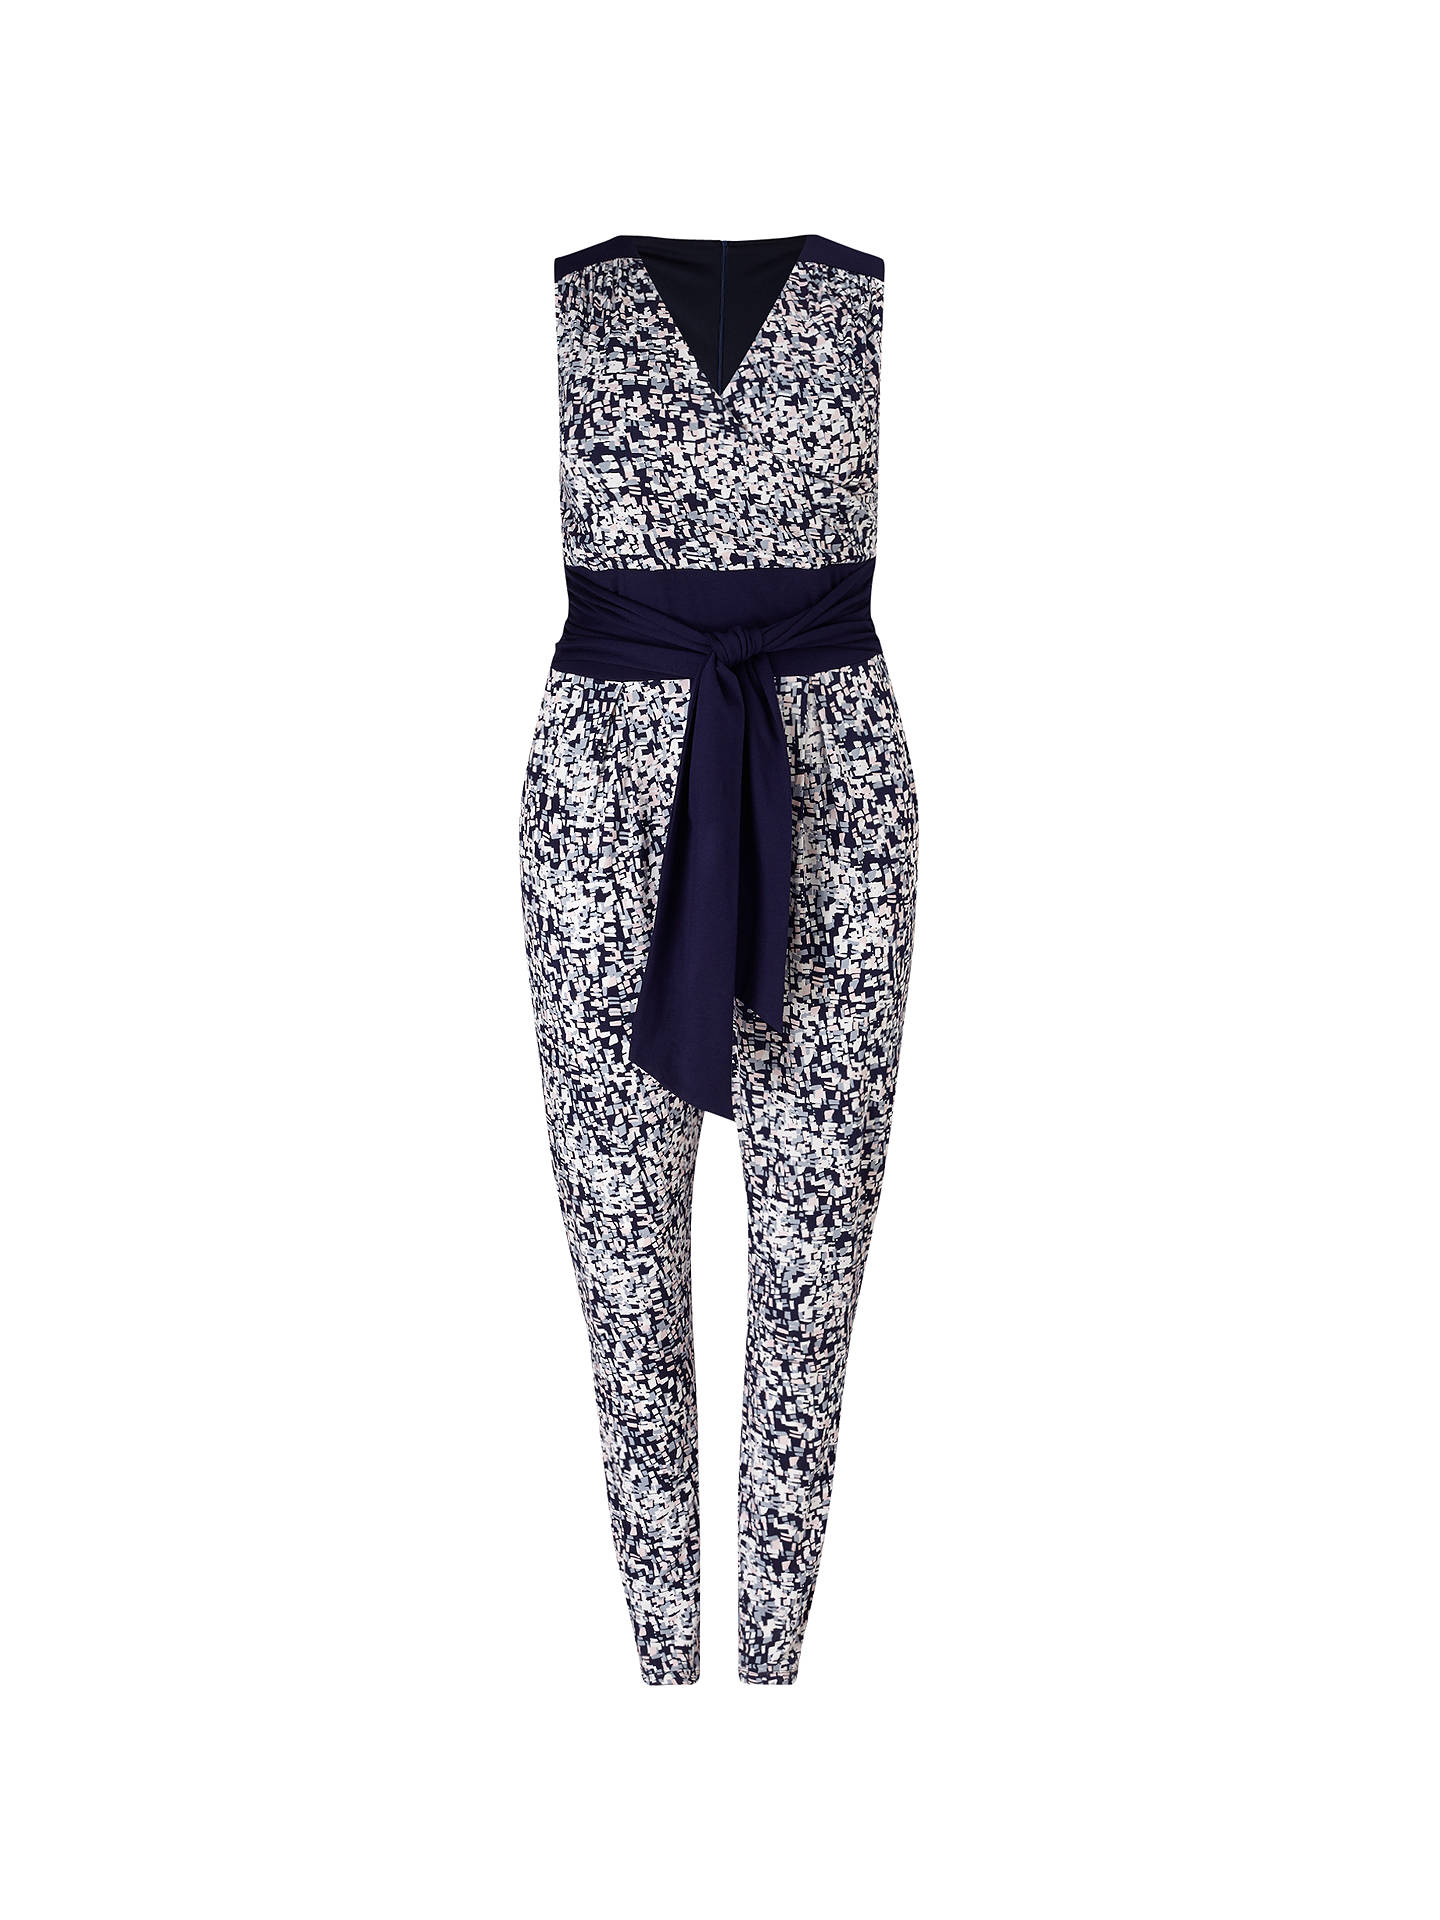 BuyStudio 8 Miley Jumpsuit, Multi, 12 Online at johnlewis.com